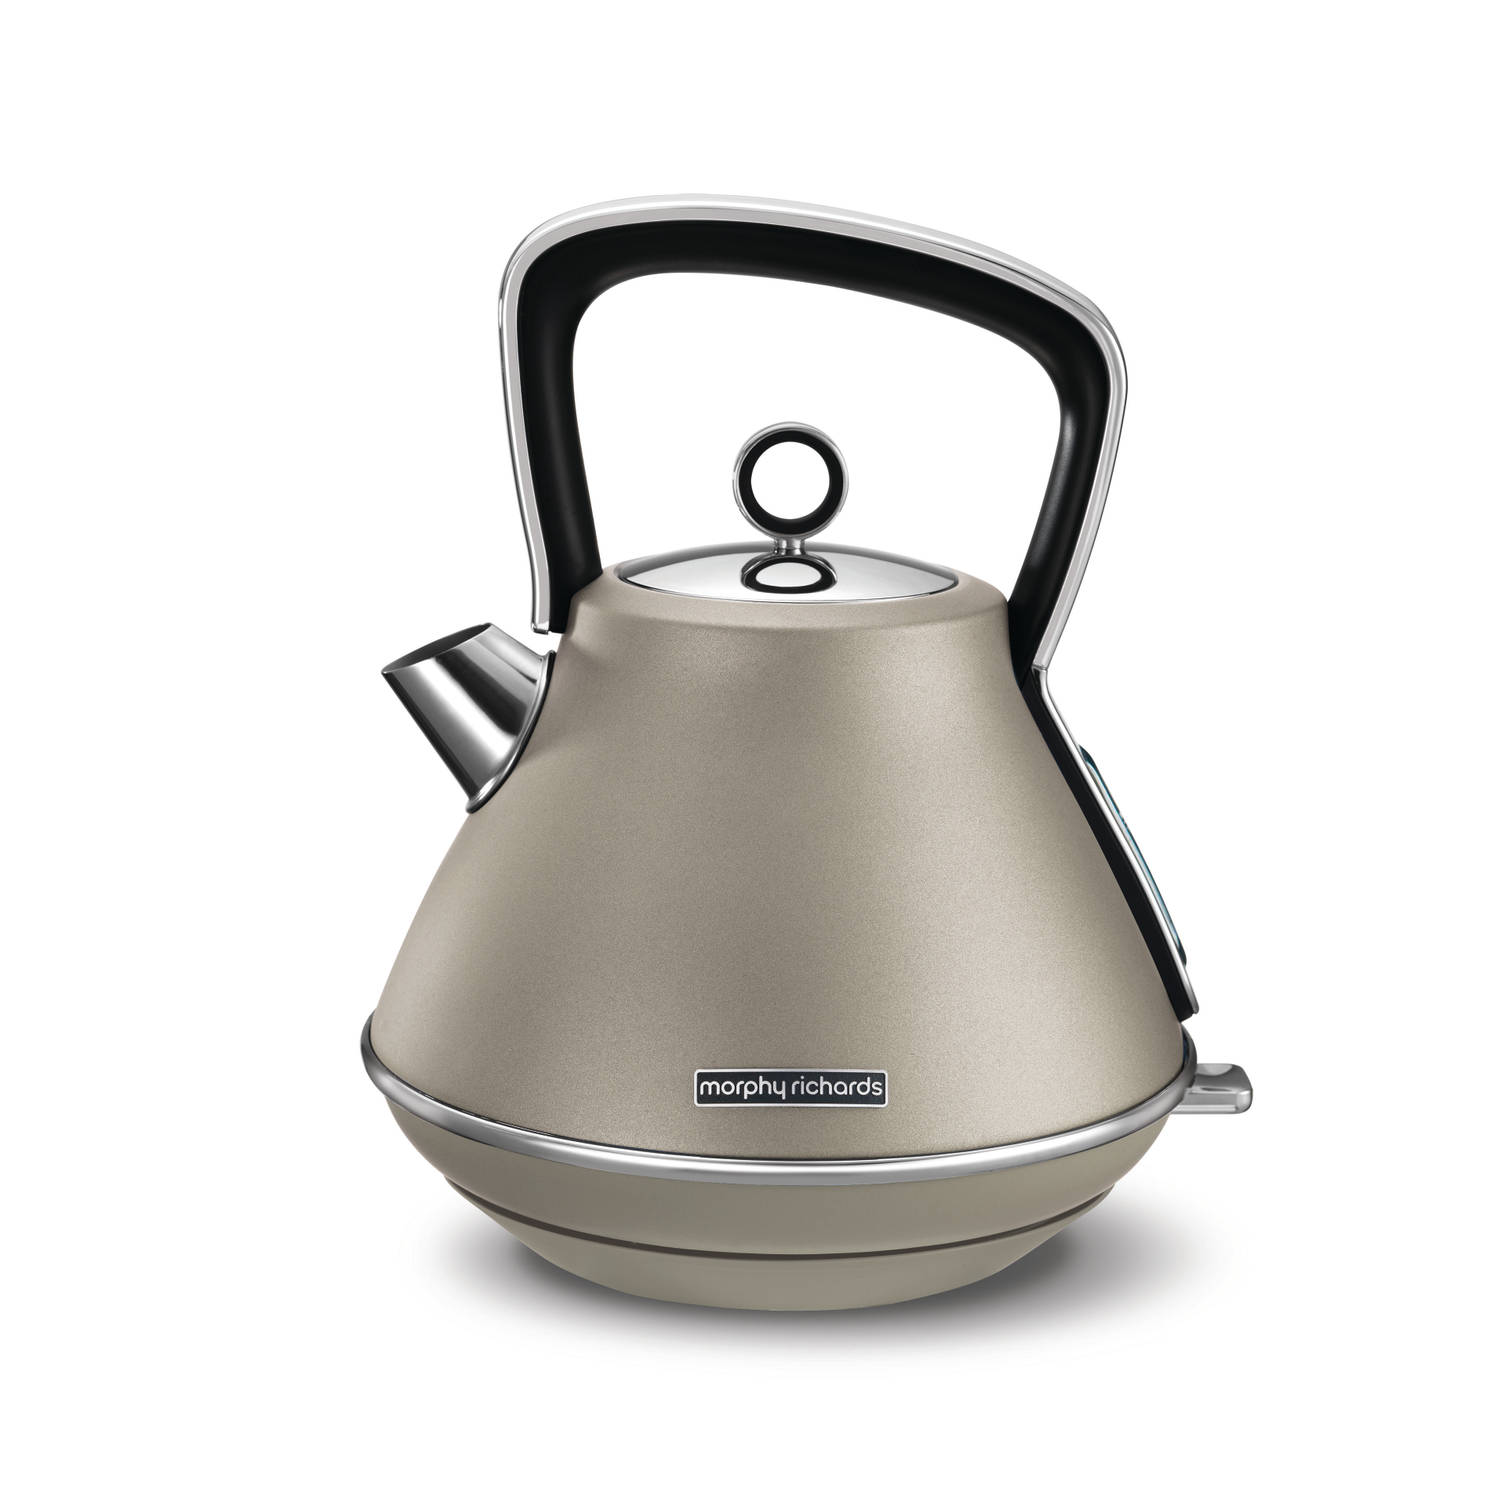 Morphy Richards waterkoker Evoke Special Edition (piramide-vorm) - platina